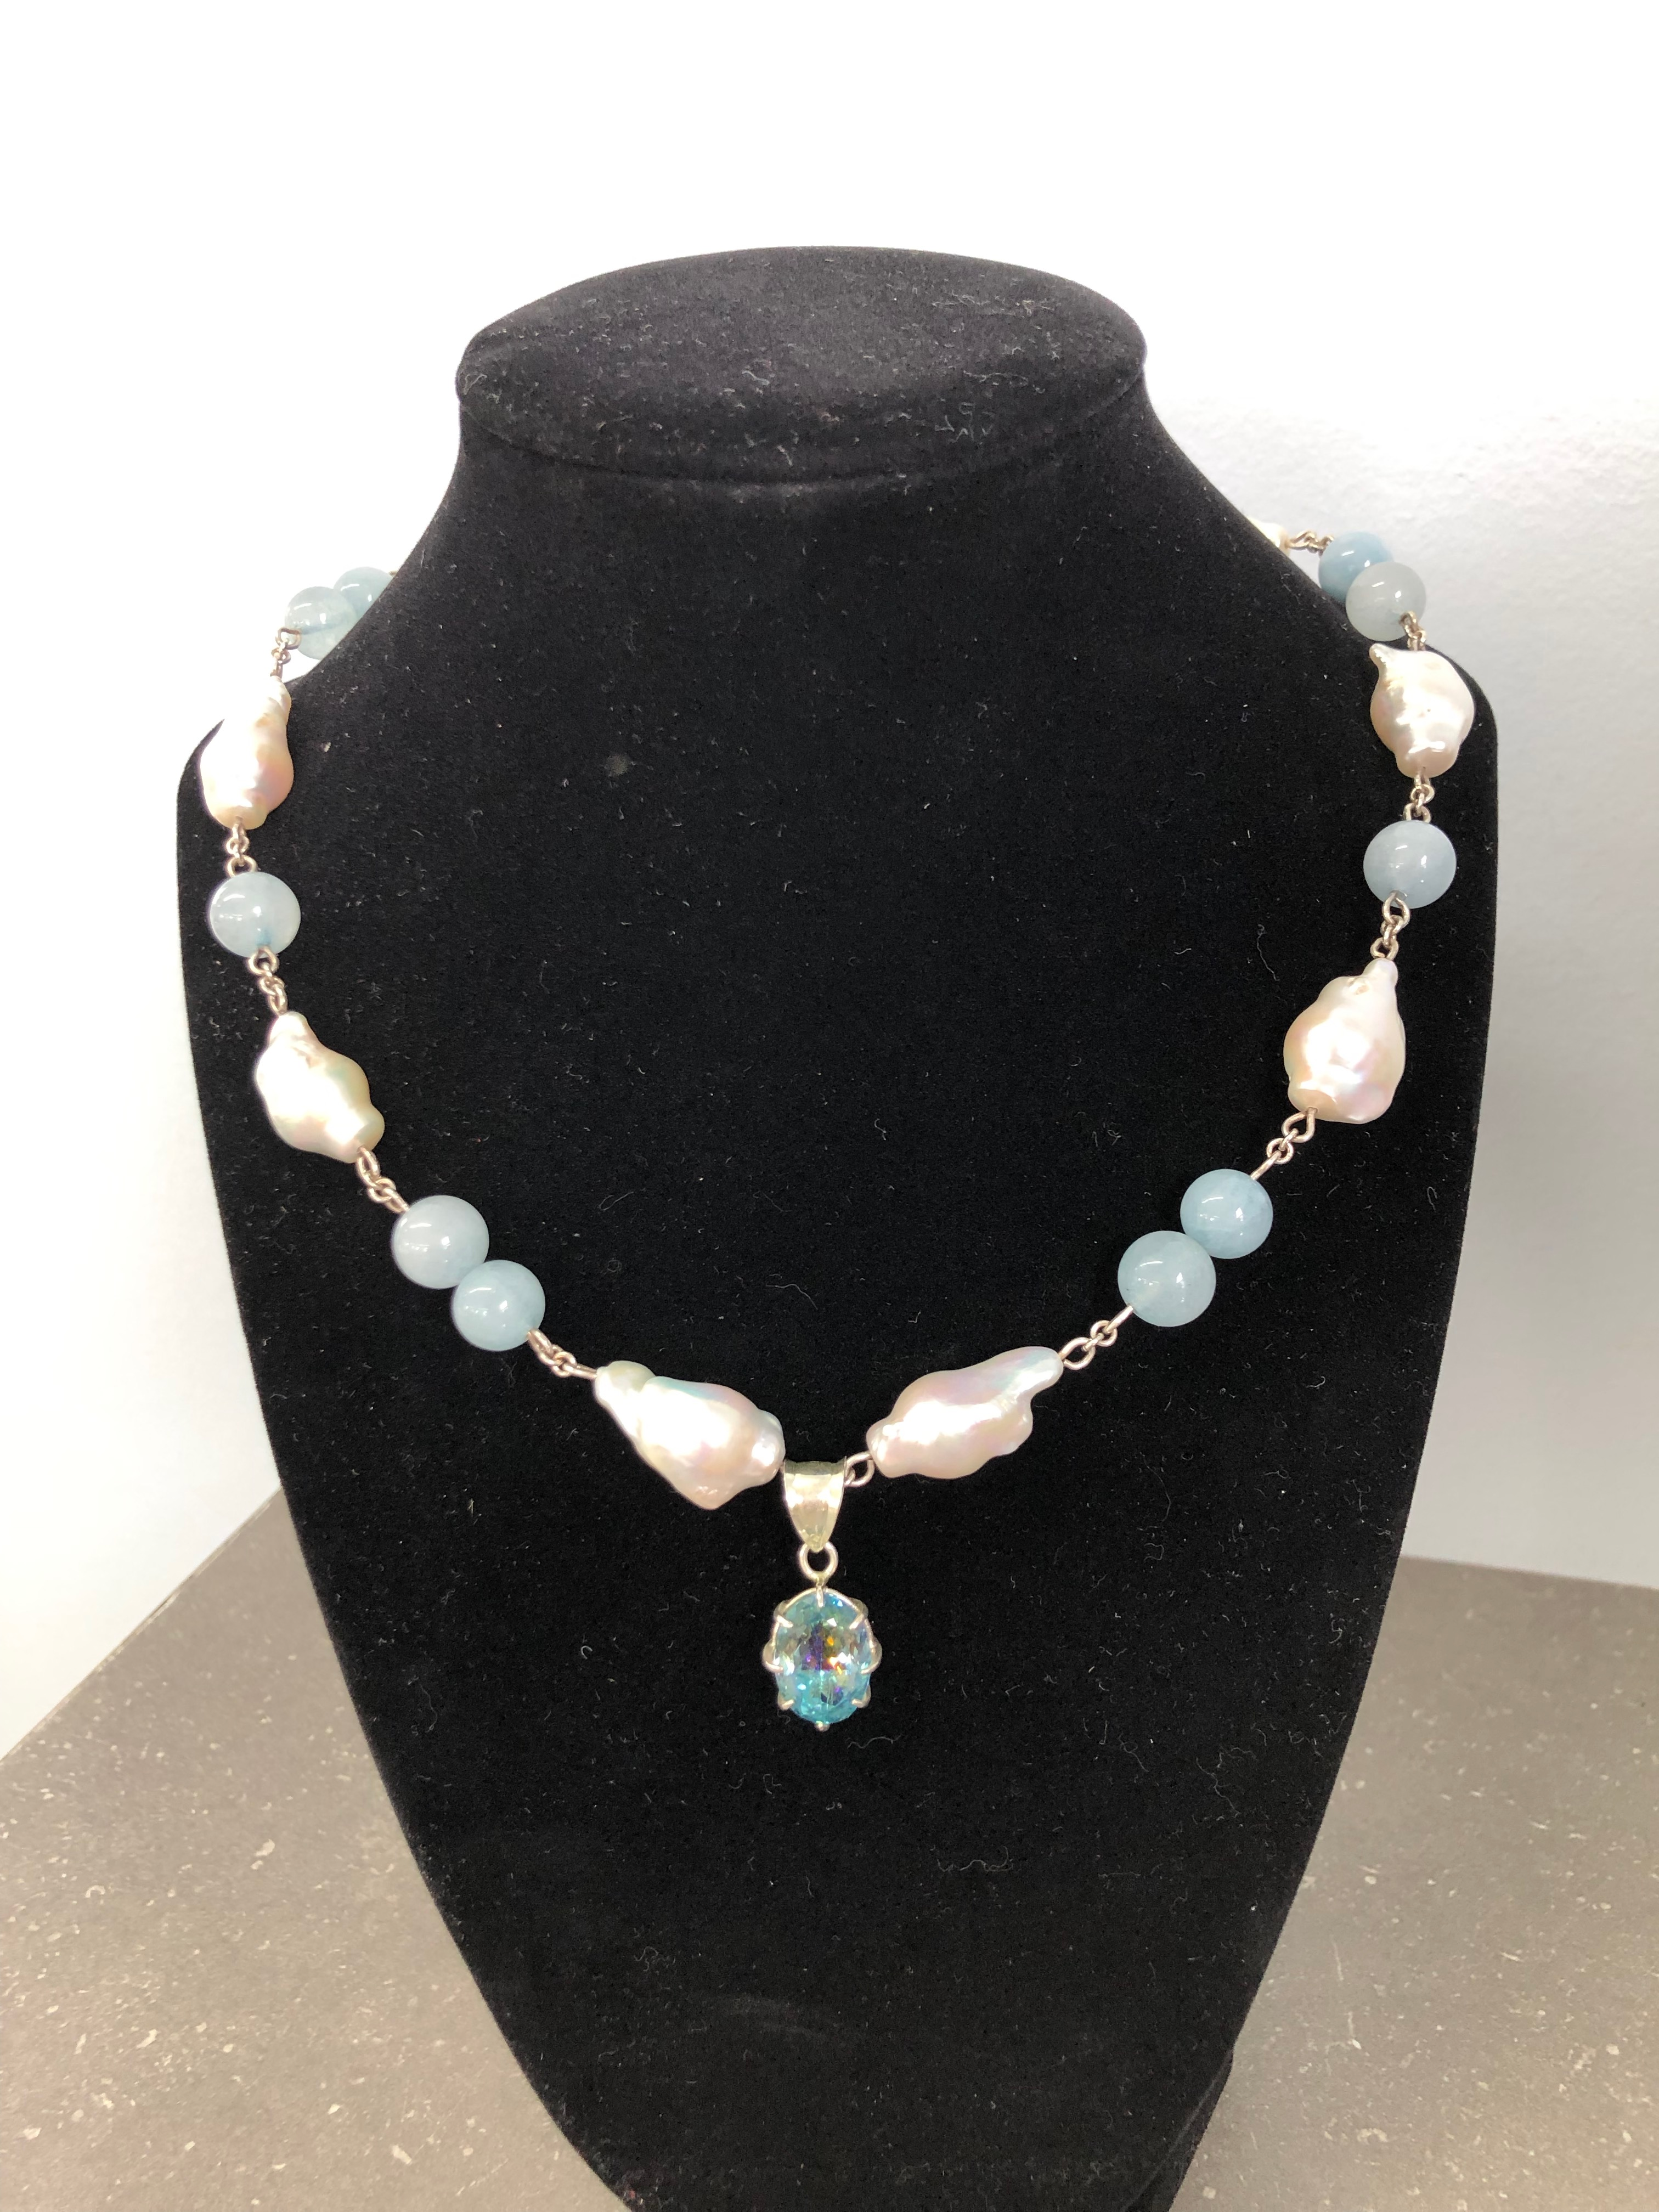 Sterling Silver Necklace,Freshwater Baroque Pearls w/aquamarine Balls & Sterling Silver Pendant w/Mystic Topaz